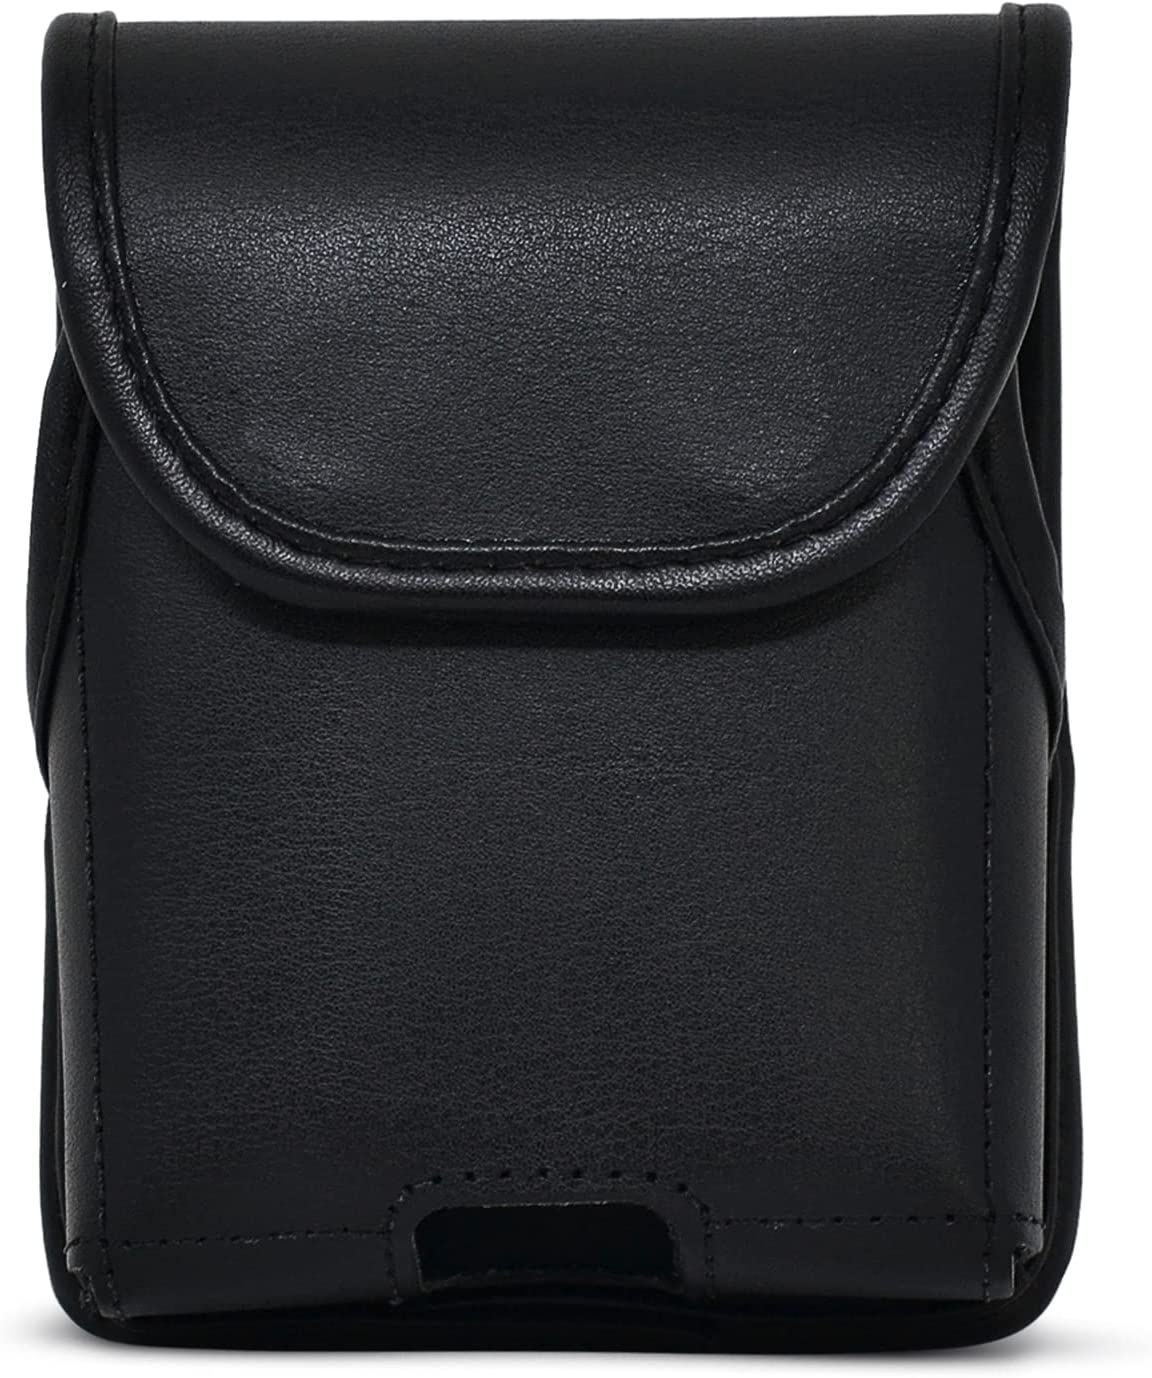 Turtleback Belt Case Designed for Samsung Galaxy Z Flip3 (2021) 5G Vertical Holster Black Leather Pouch with Heavy Duty Rotating Belt Clip, Made in USA